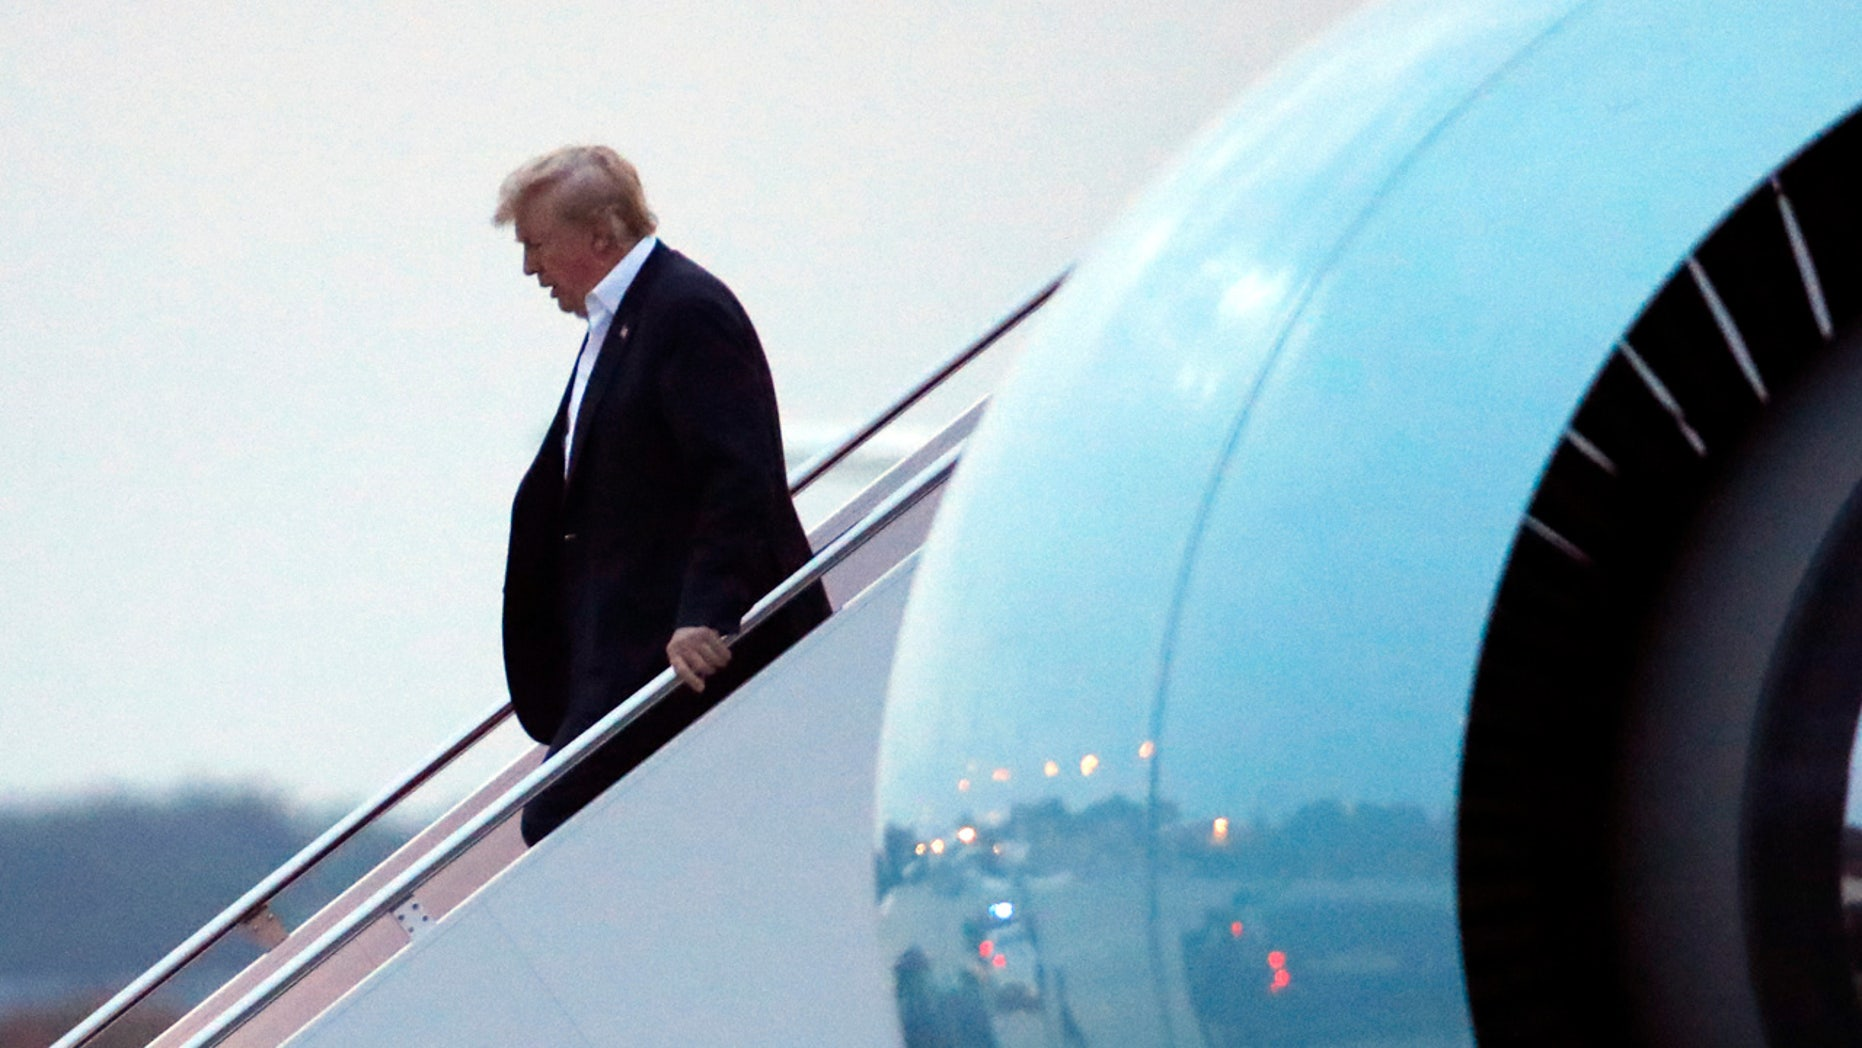 June 13:  President Trump steps off Air Force One as he arrived at Andrews Air Force Base. Trump returned from Singapore and a meeting with North Korean leader Kim Jong Un.